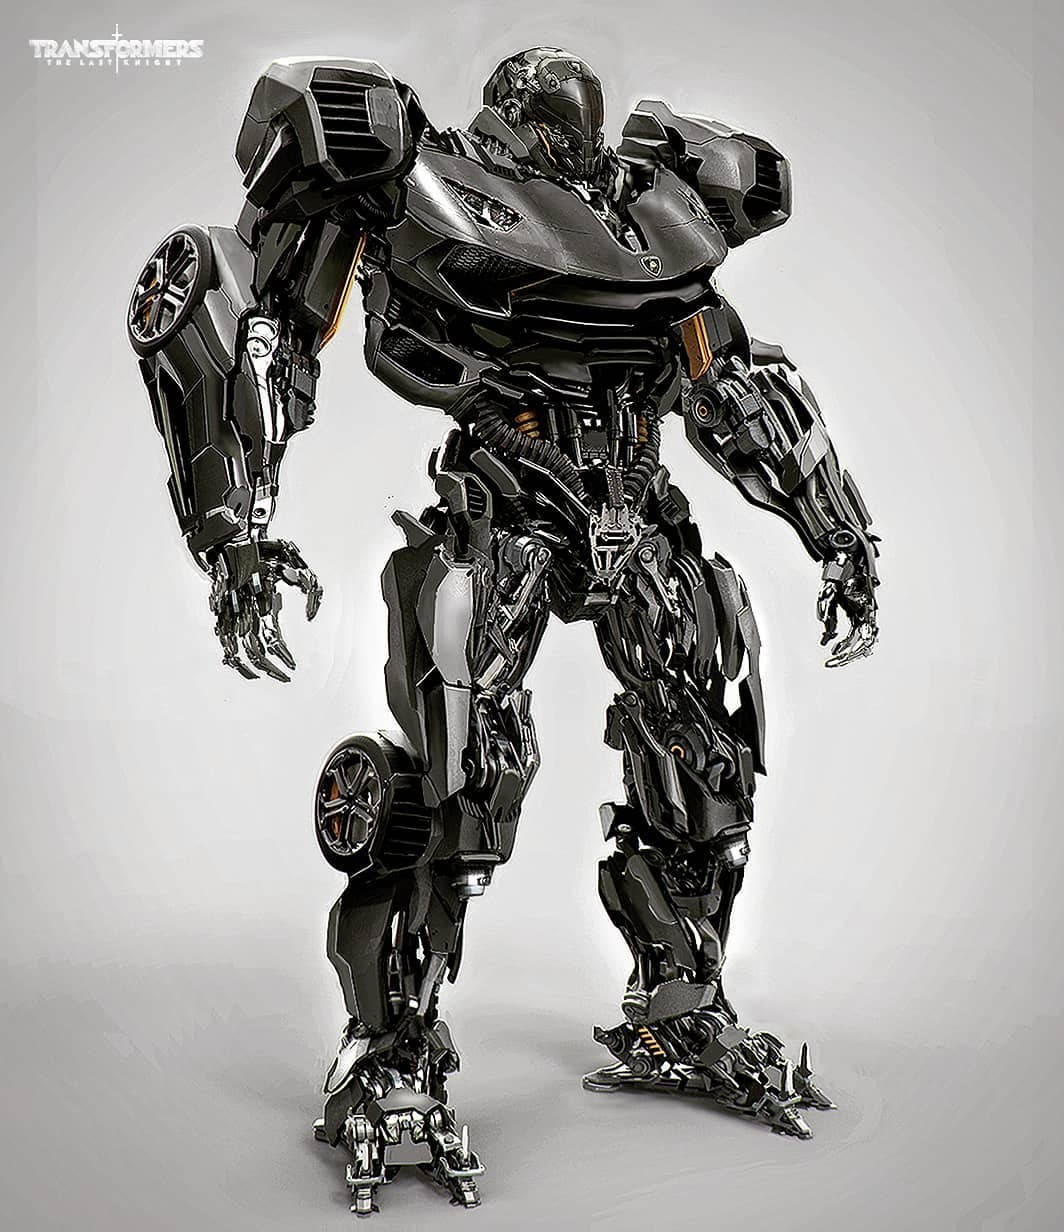 Transformers News: New Transformers: The Last Knight Concept Images from Furio Tedeschi and James Paick